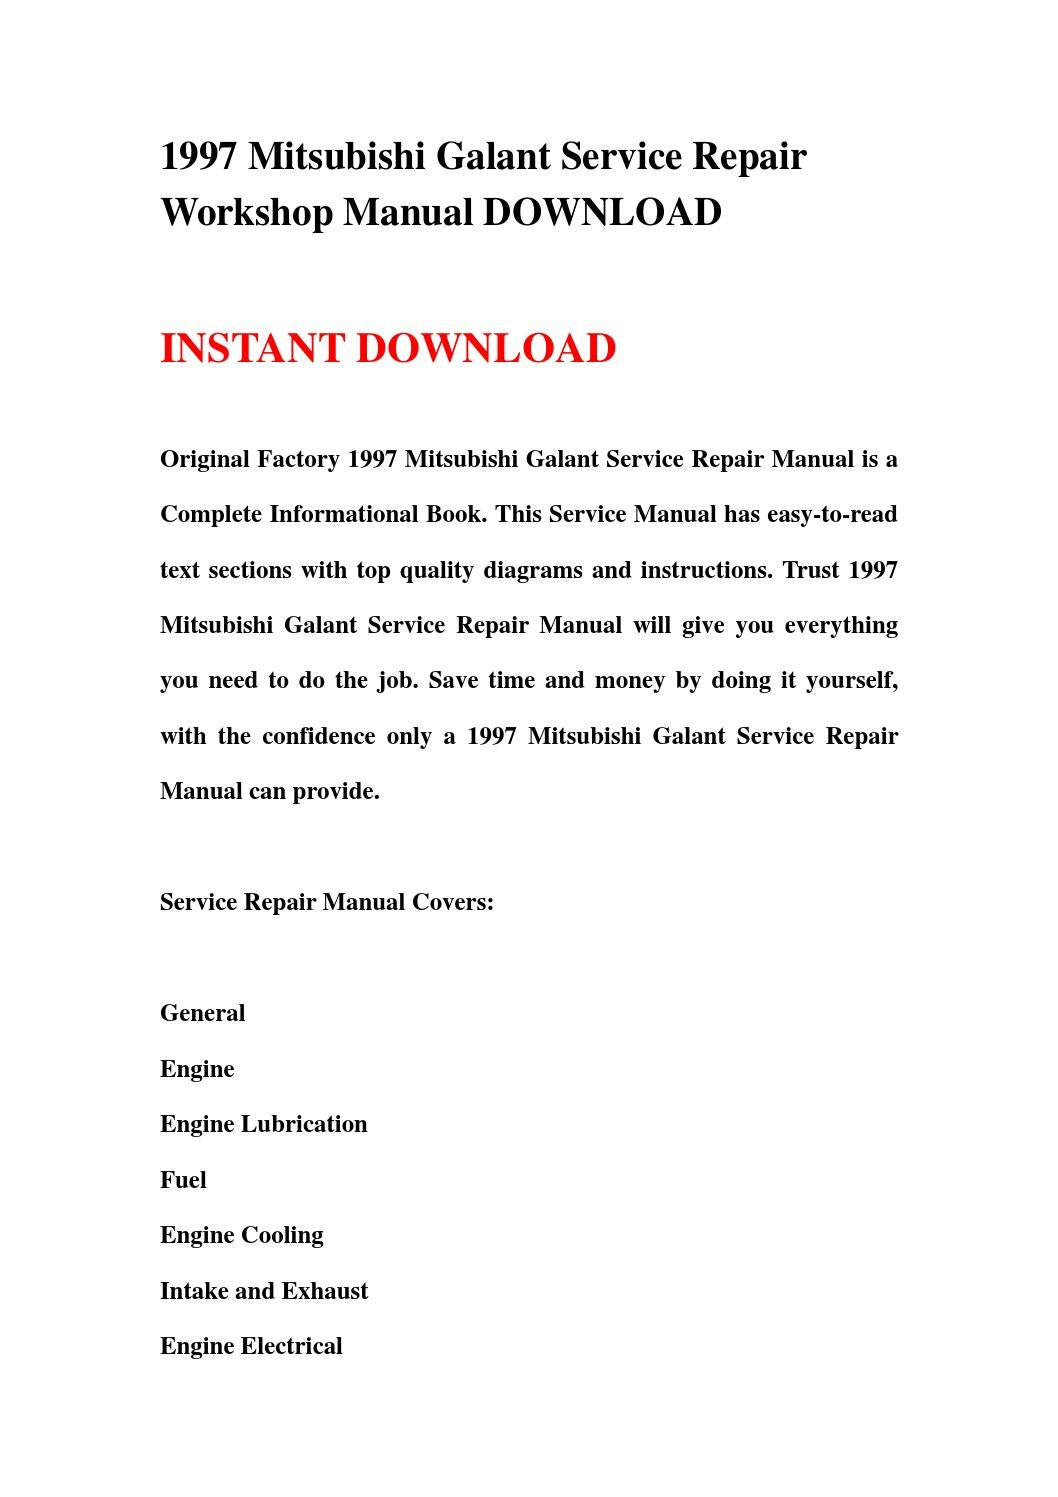 1997 mitsubishi galant service repair workshop manual download by hgbhsefnj  - issuu